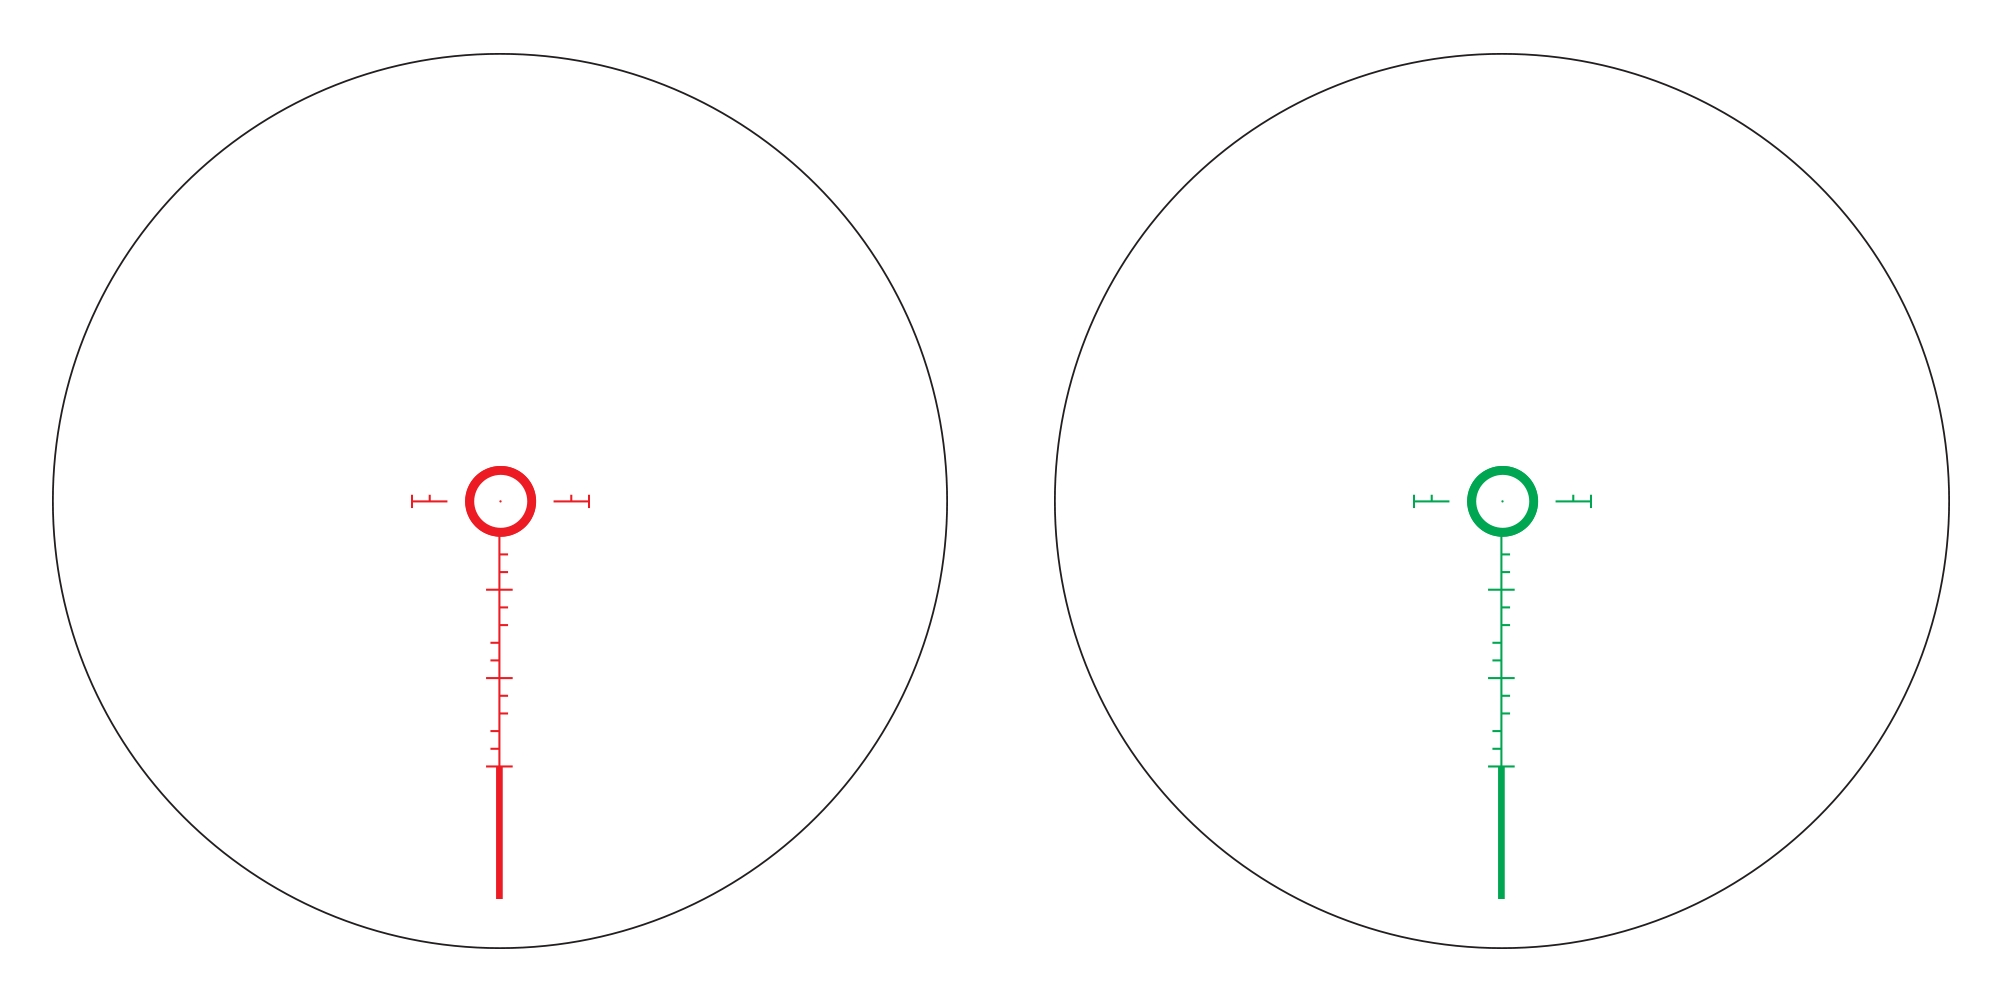 Athlon rifle scopes, red dot sights, and reticles